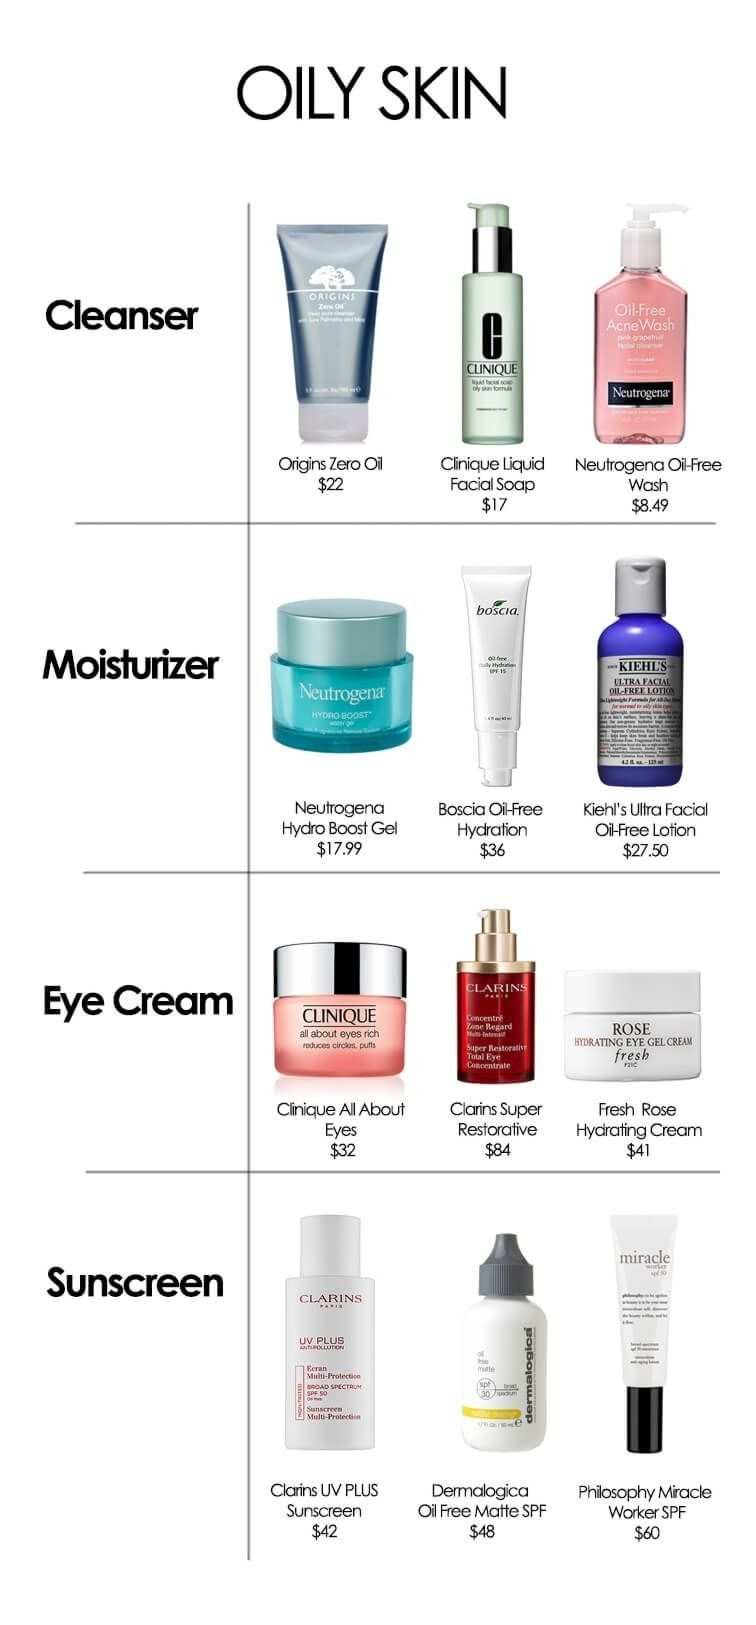 Skin Care Routine For Acne Looking For The Top Proven Organic Skin Care Options High Quality Ideas Skin Cleanser Products Cosmetic Skin Care Oily Skin Care